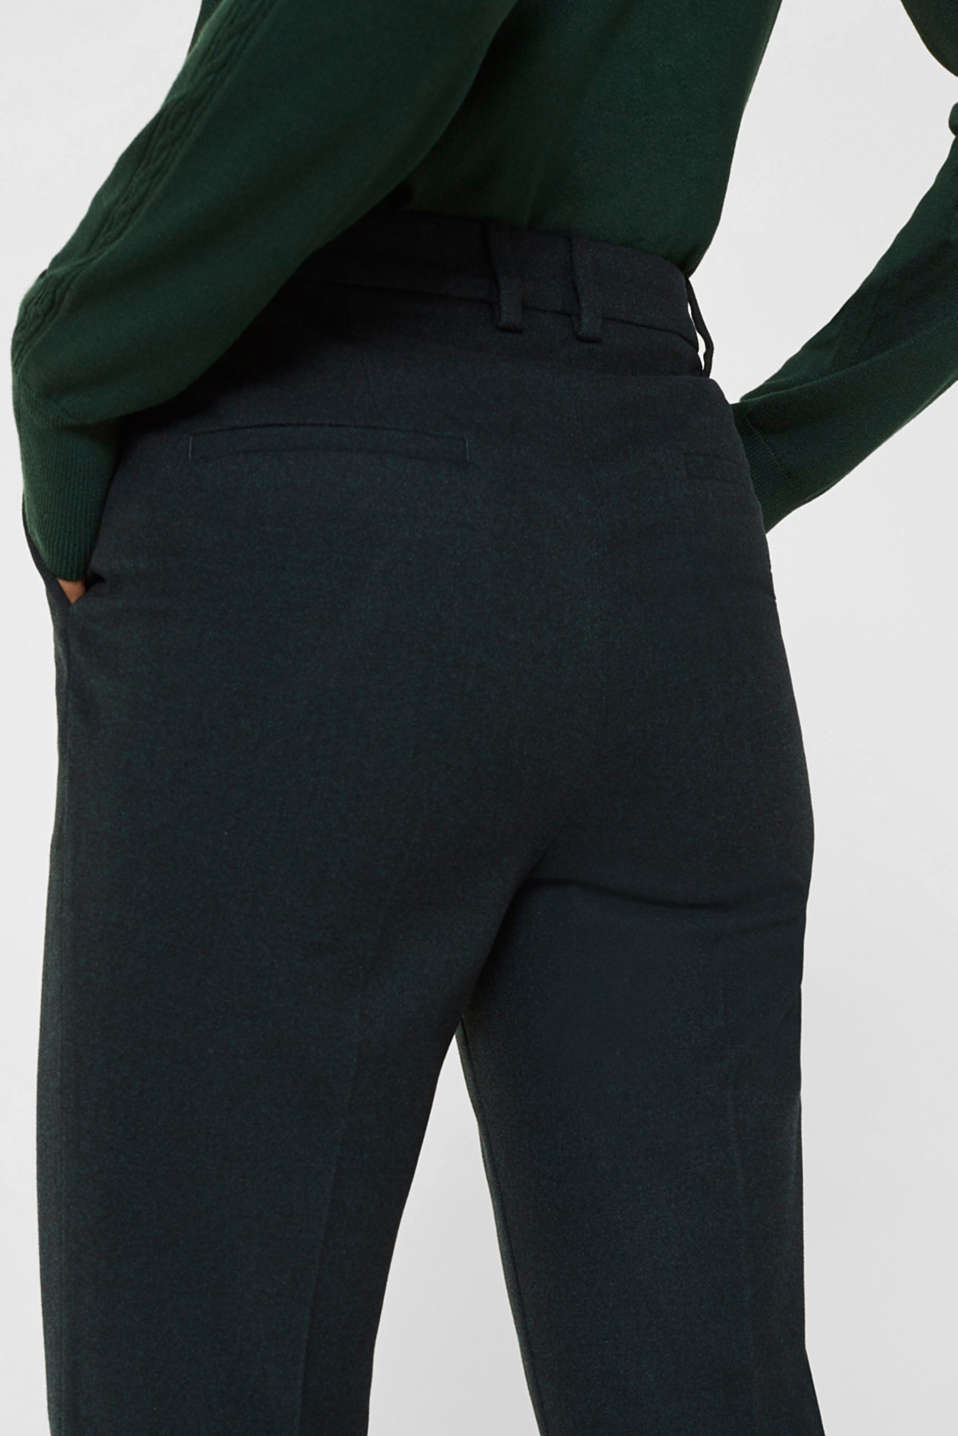 Flannel trousers with stretch for comfort, DARK TEAL GREEN, detail image number 5